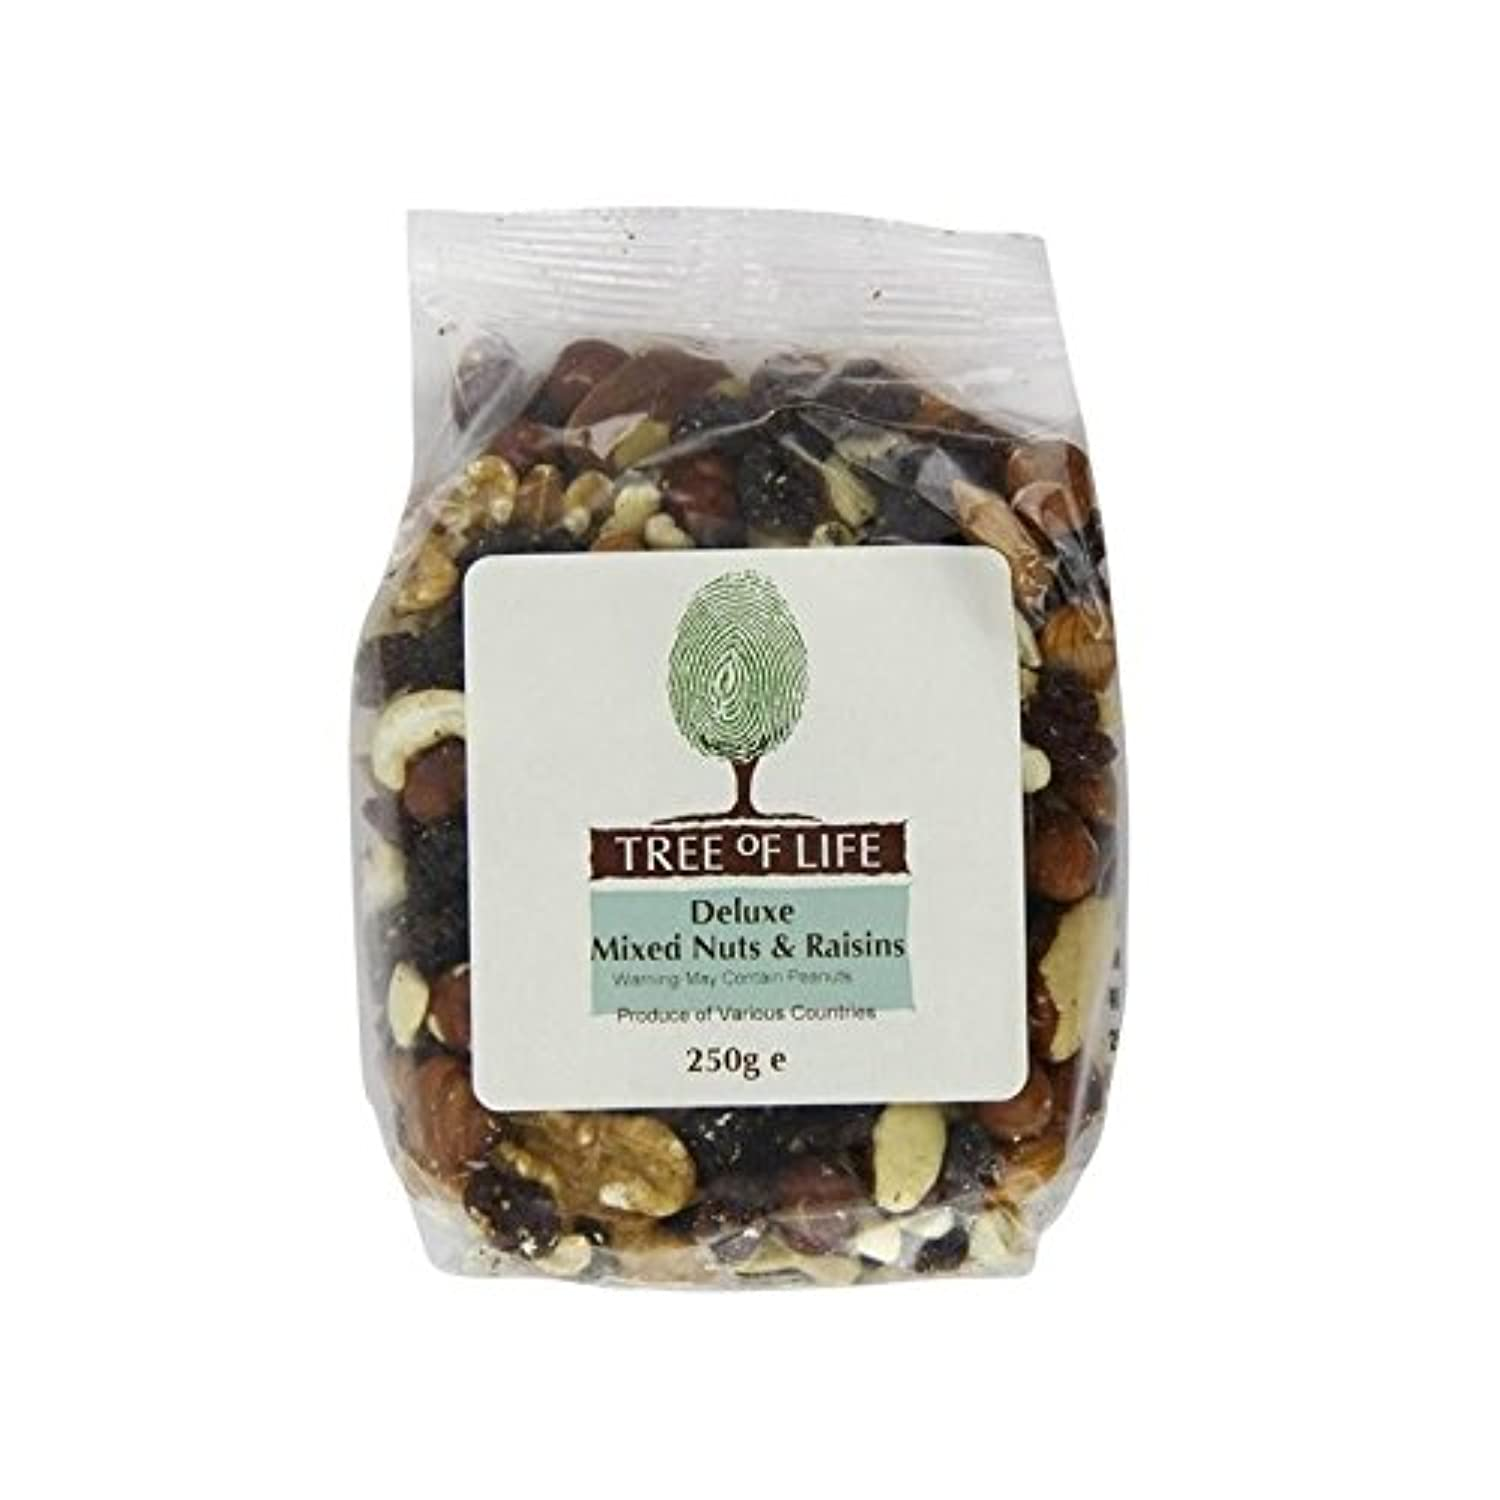 Tree of Life Deluxe Mixed Nuts & Raisins 250g - Pack of 2